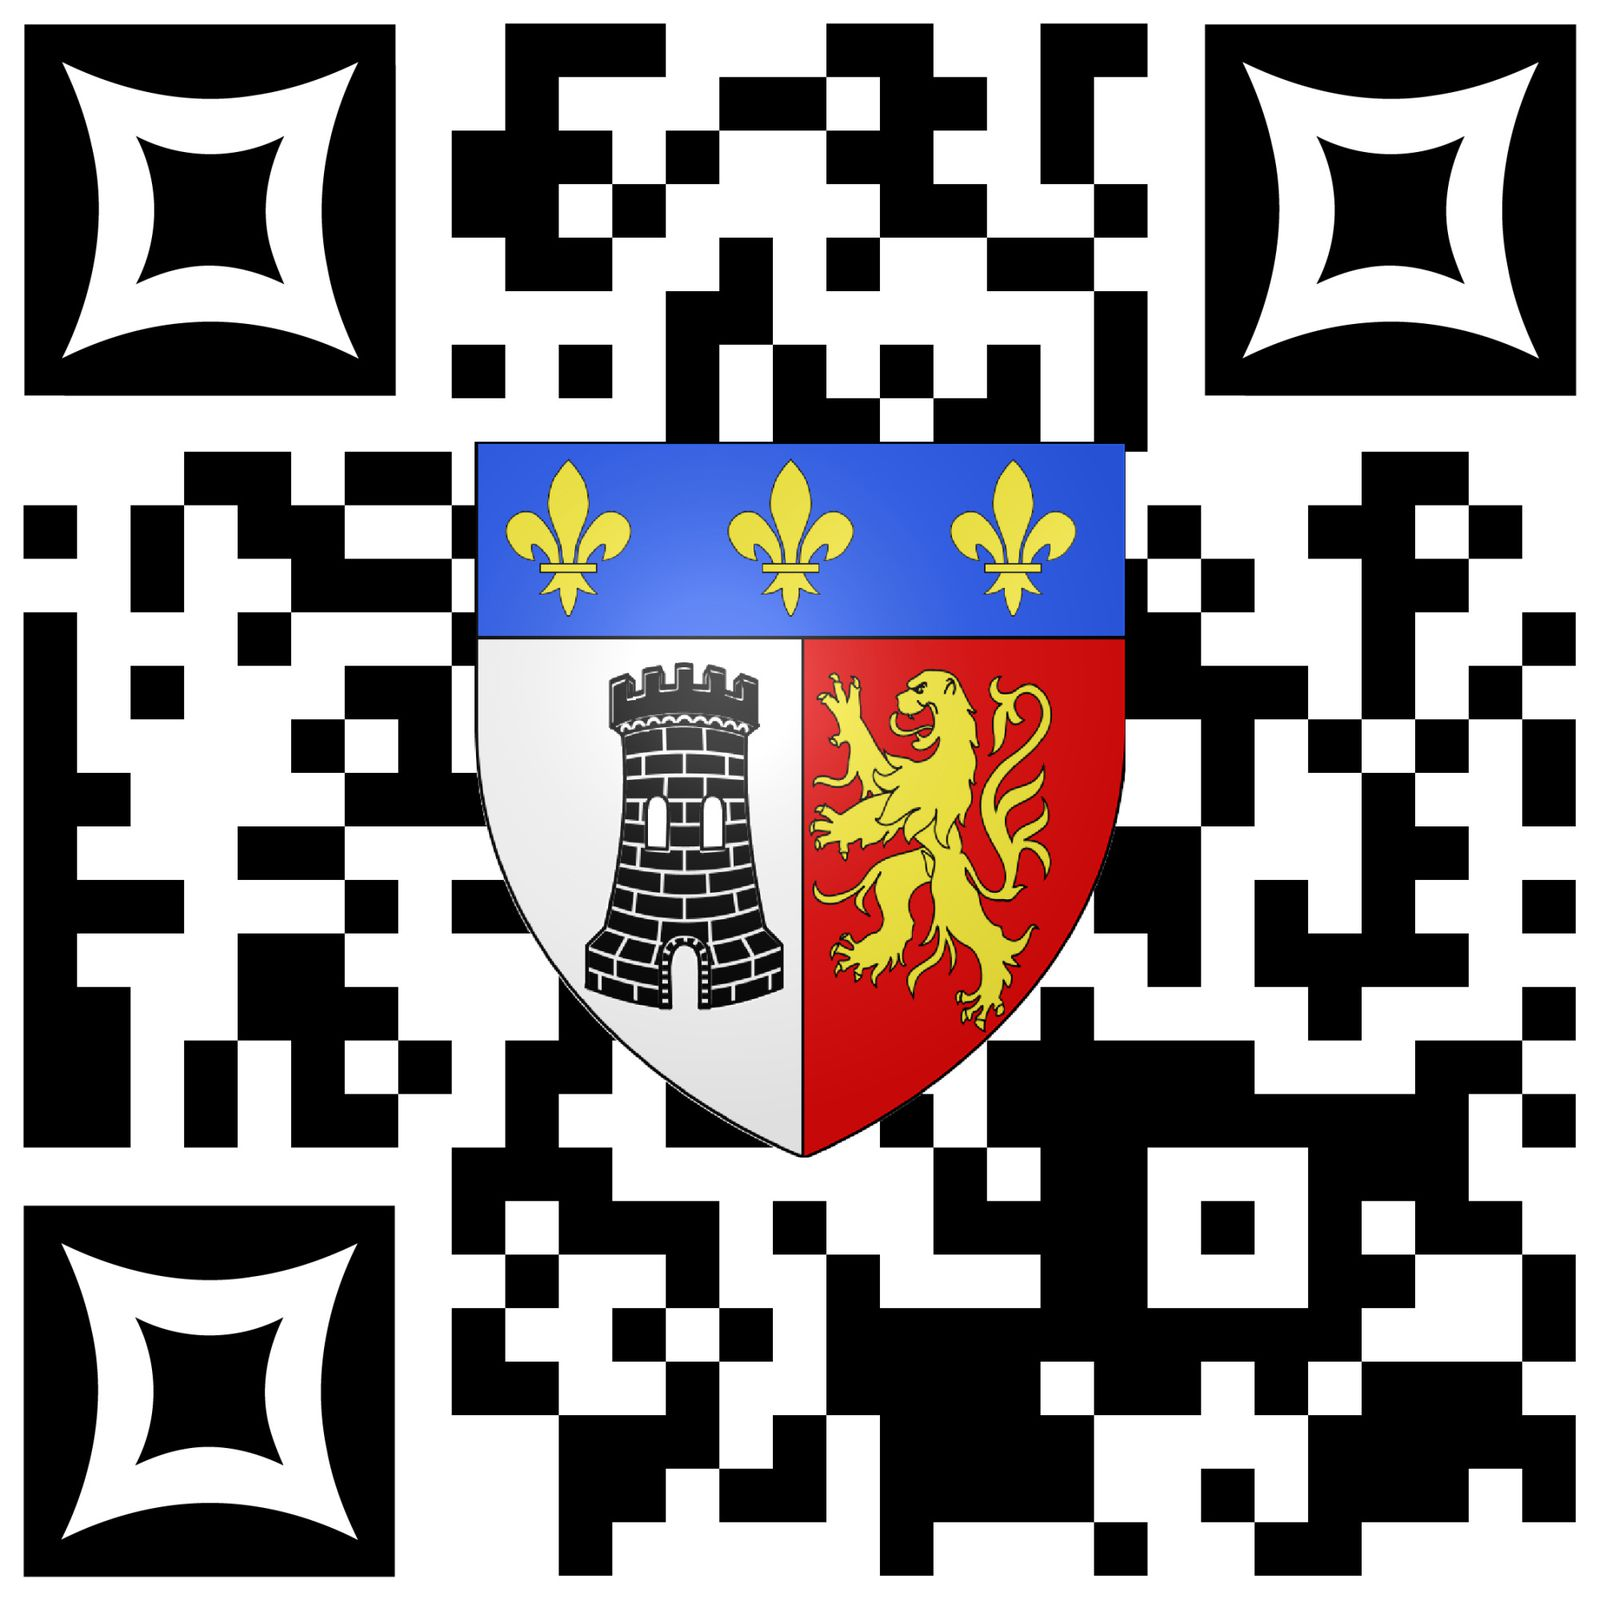 qrcode-mairie